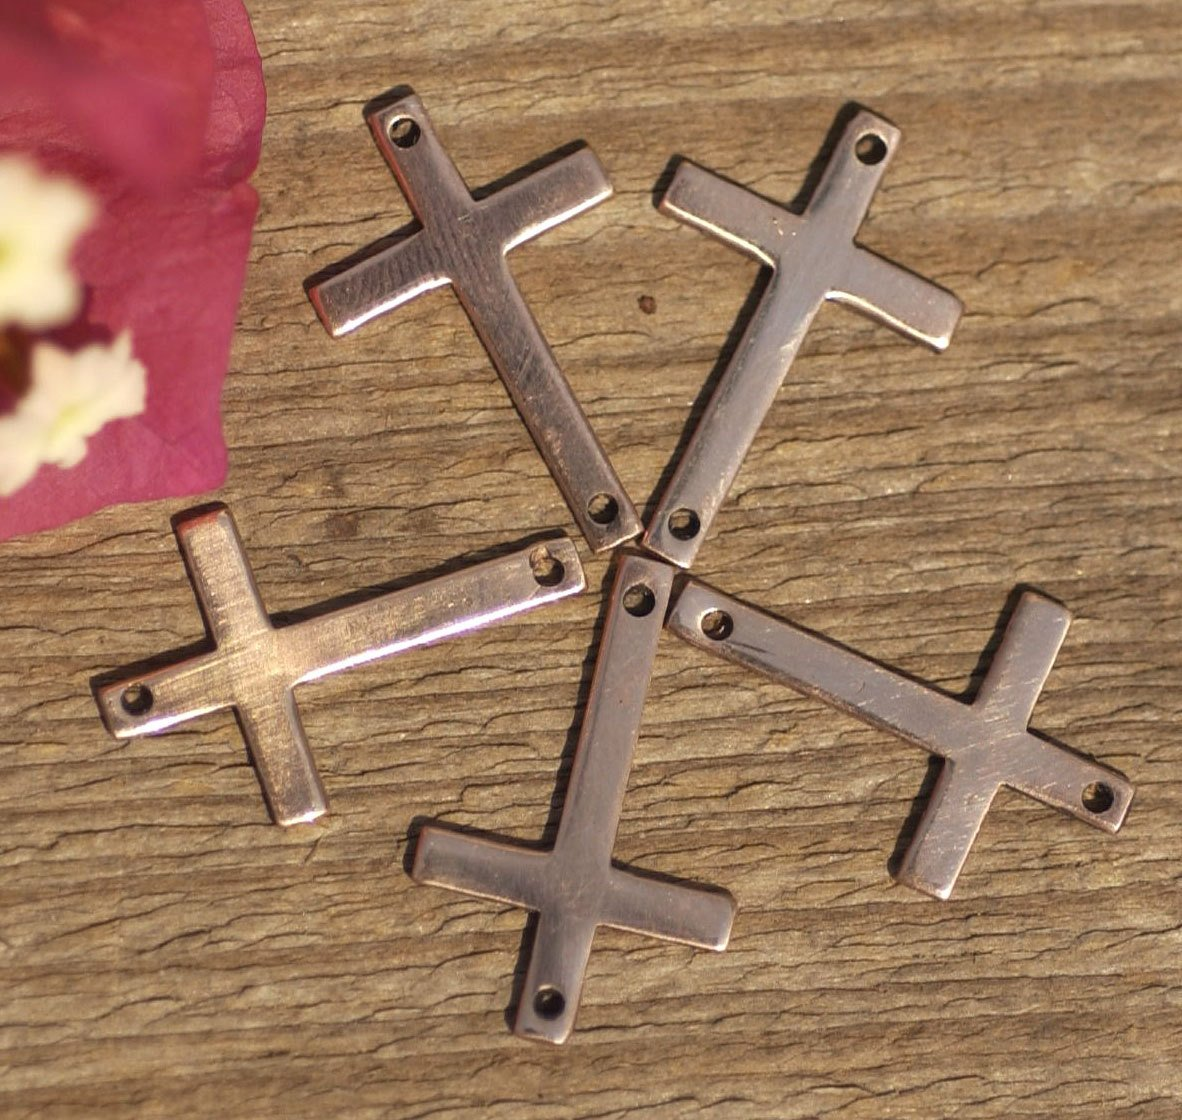 Copper or Nickel Silver 21mm x 14mm 20g Blank Classic Religous Cross with hole Blanks Cutout for Enameling Stamping Texturing